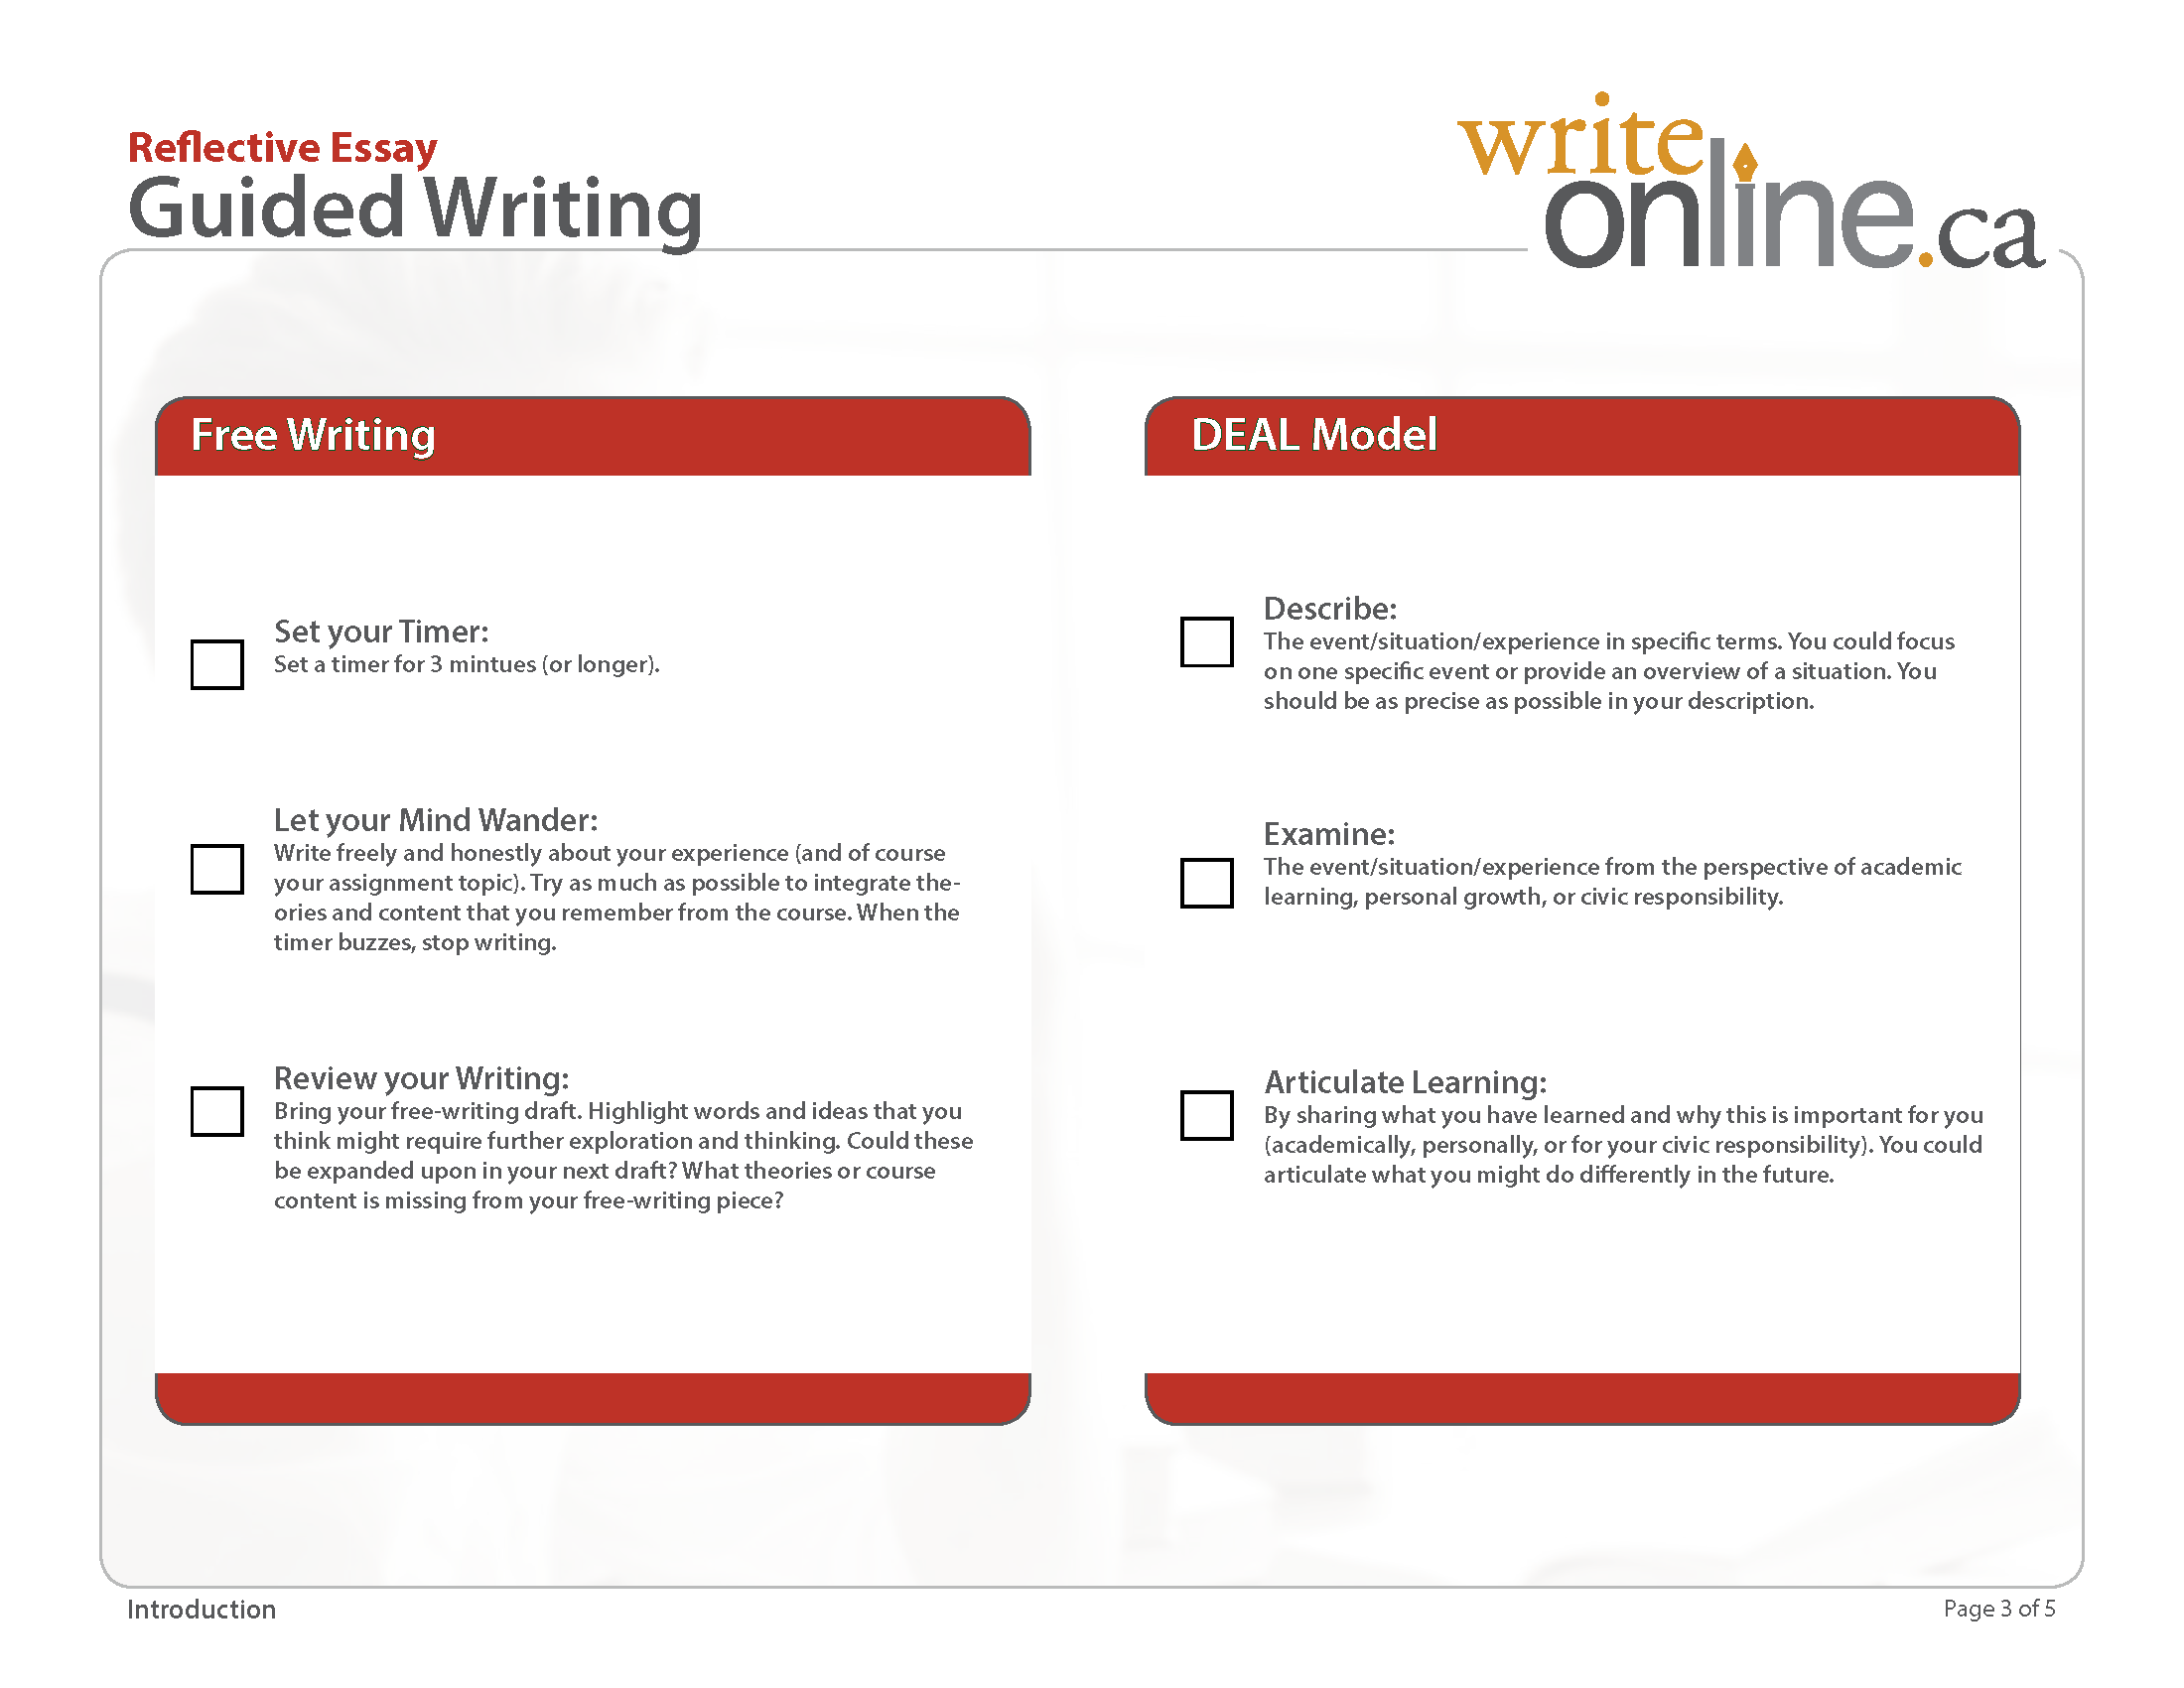 018 Promptchecklist Page 3 Essay Example Free Archaicawful Write Writing Prompts Examples Website To Essays Full